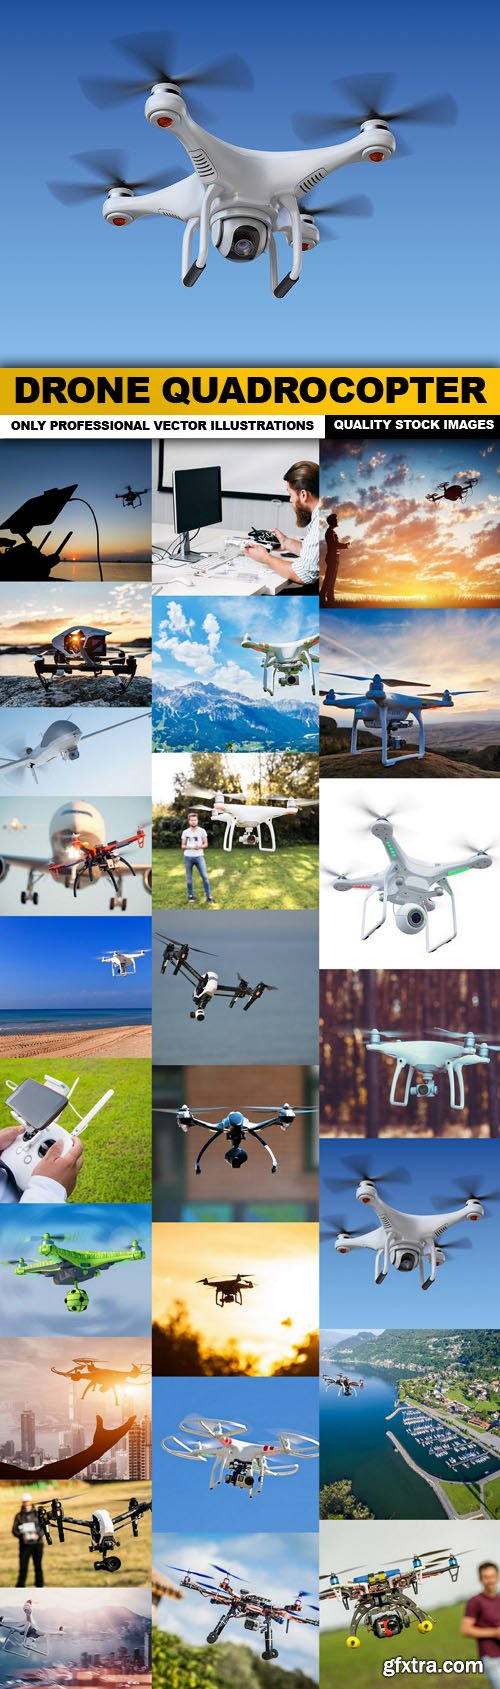 Drone Quadrocopter - 25 HQ Images